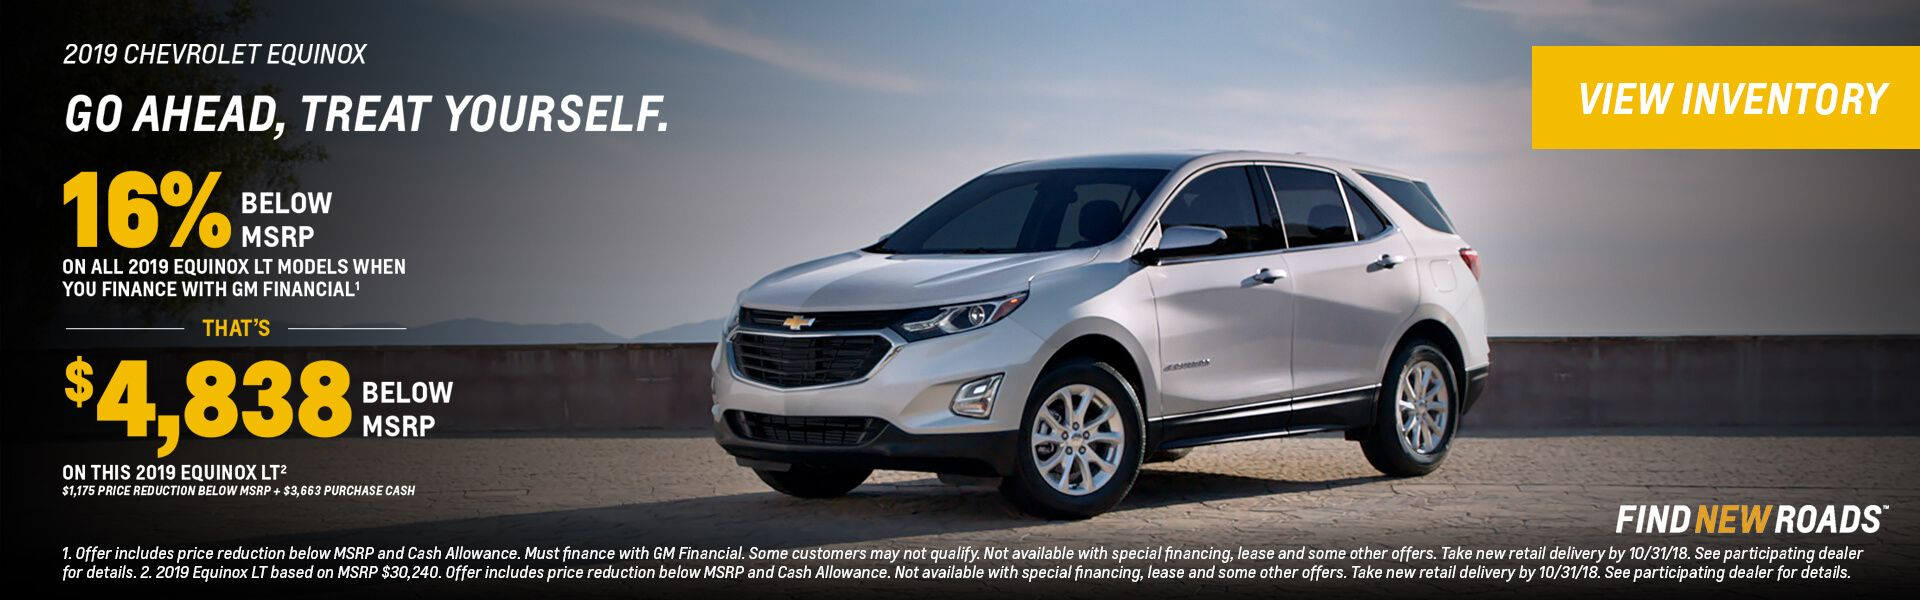 Chevy Suv Car Dealer With Special Offer More Chevrolet Car Deal